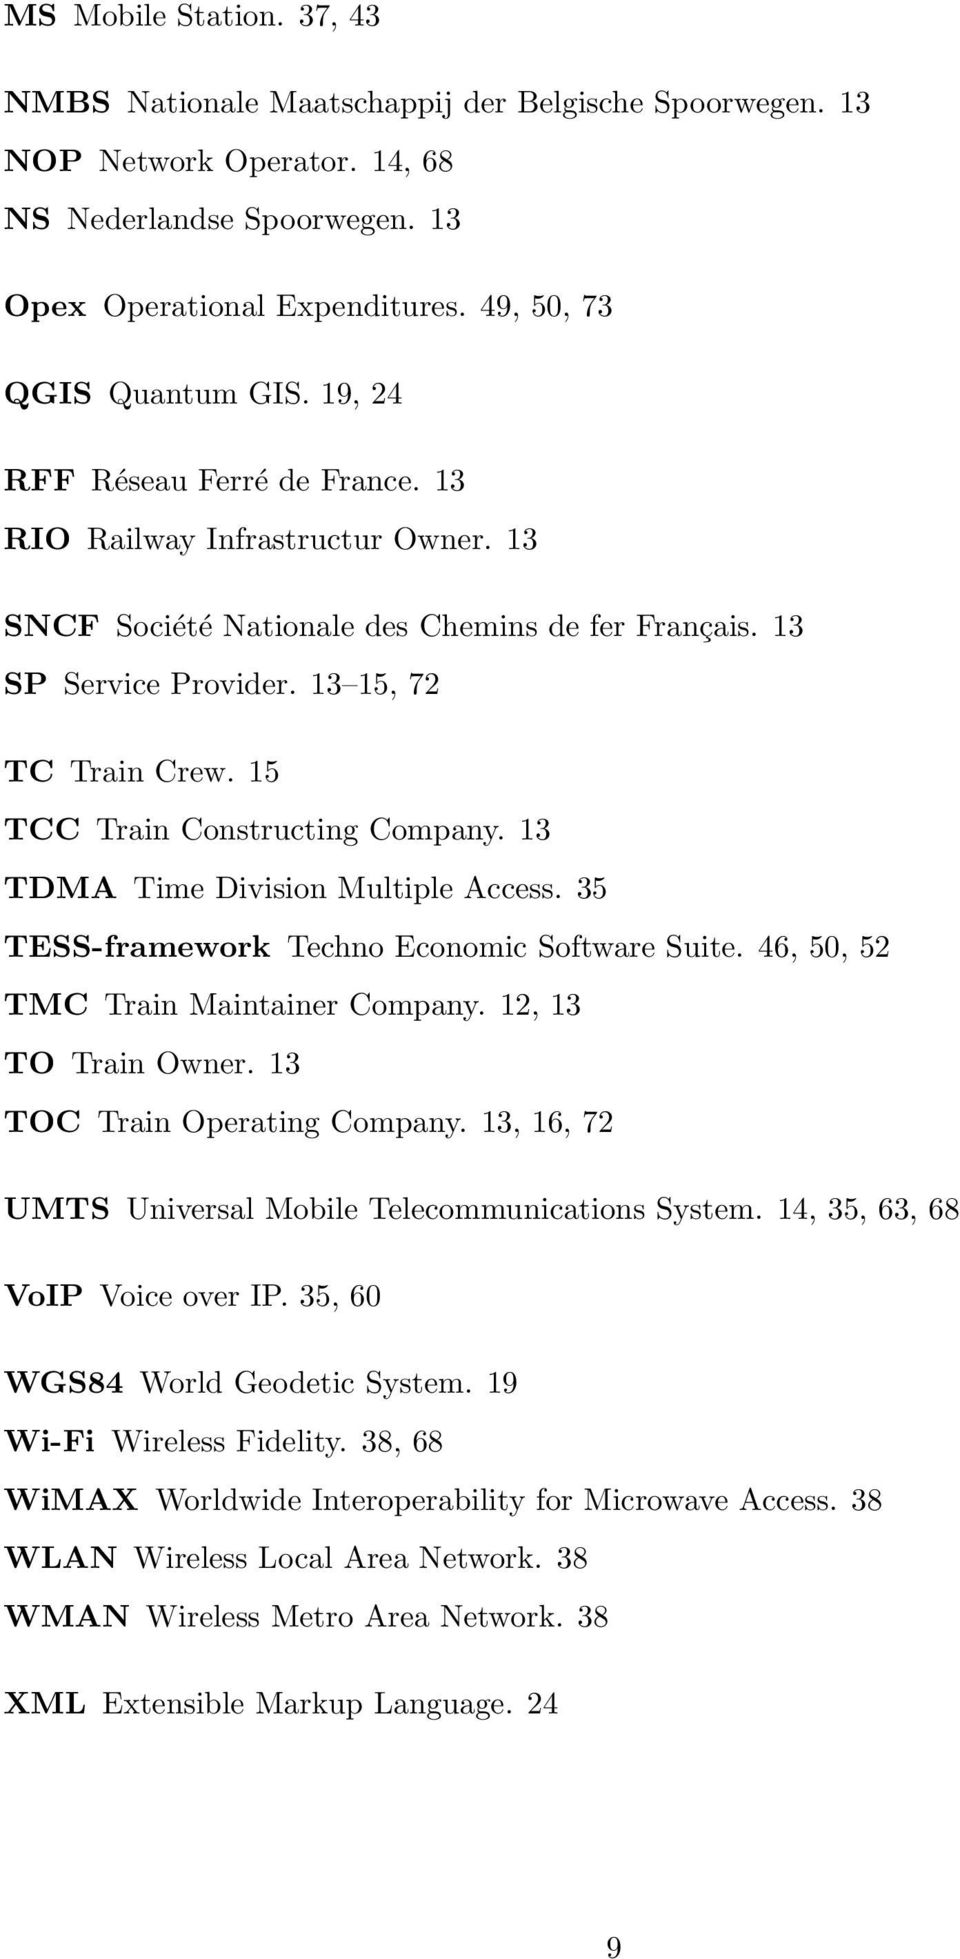 13 15, 72 TC Train Crew. 15 TCC Train Constructing Company. 13 TDMA Time Division Multiple Access. 35 TESS-framework Techno Economic Software Suite. 46, 50, 52 TMC Train Maintainer Company.